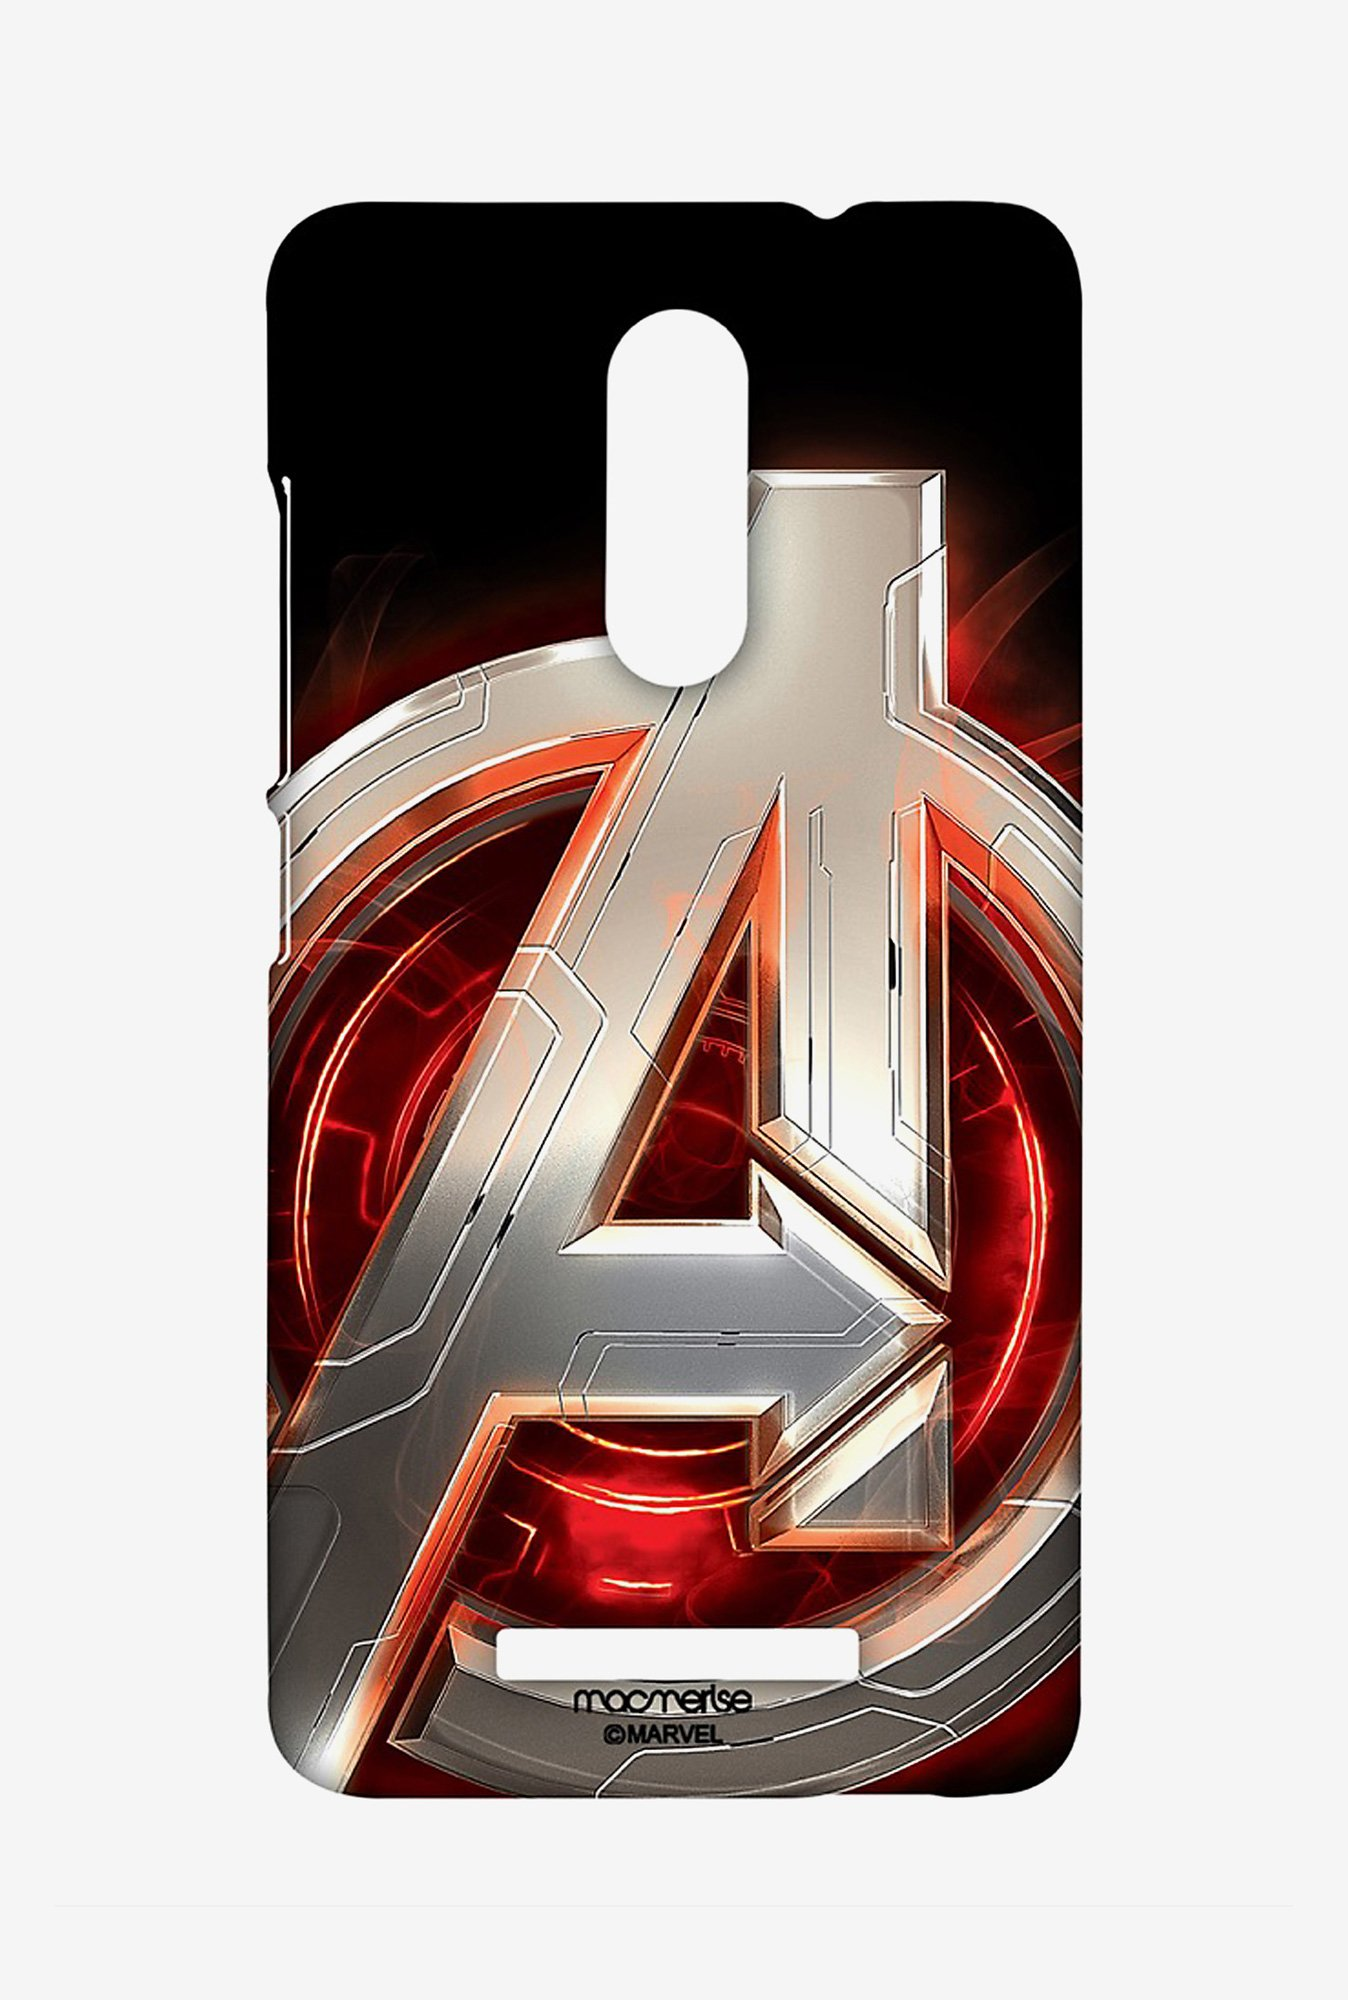 Macmerise Avengers Version 2 Sublime Case for Redmi Note 3